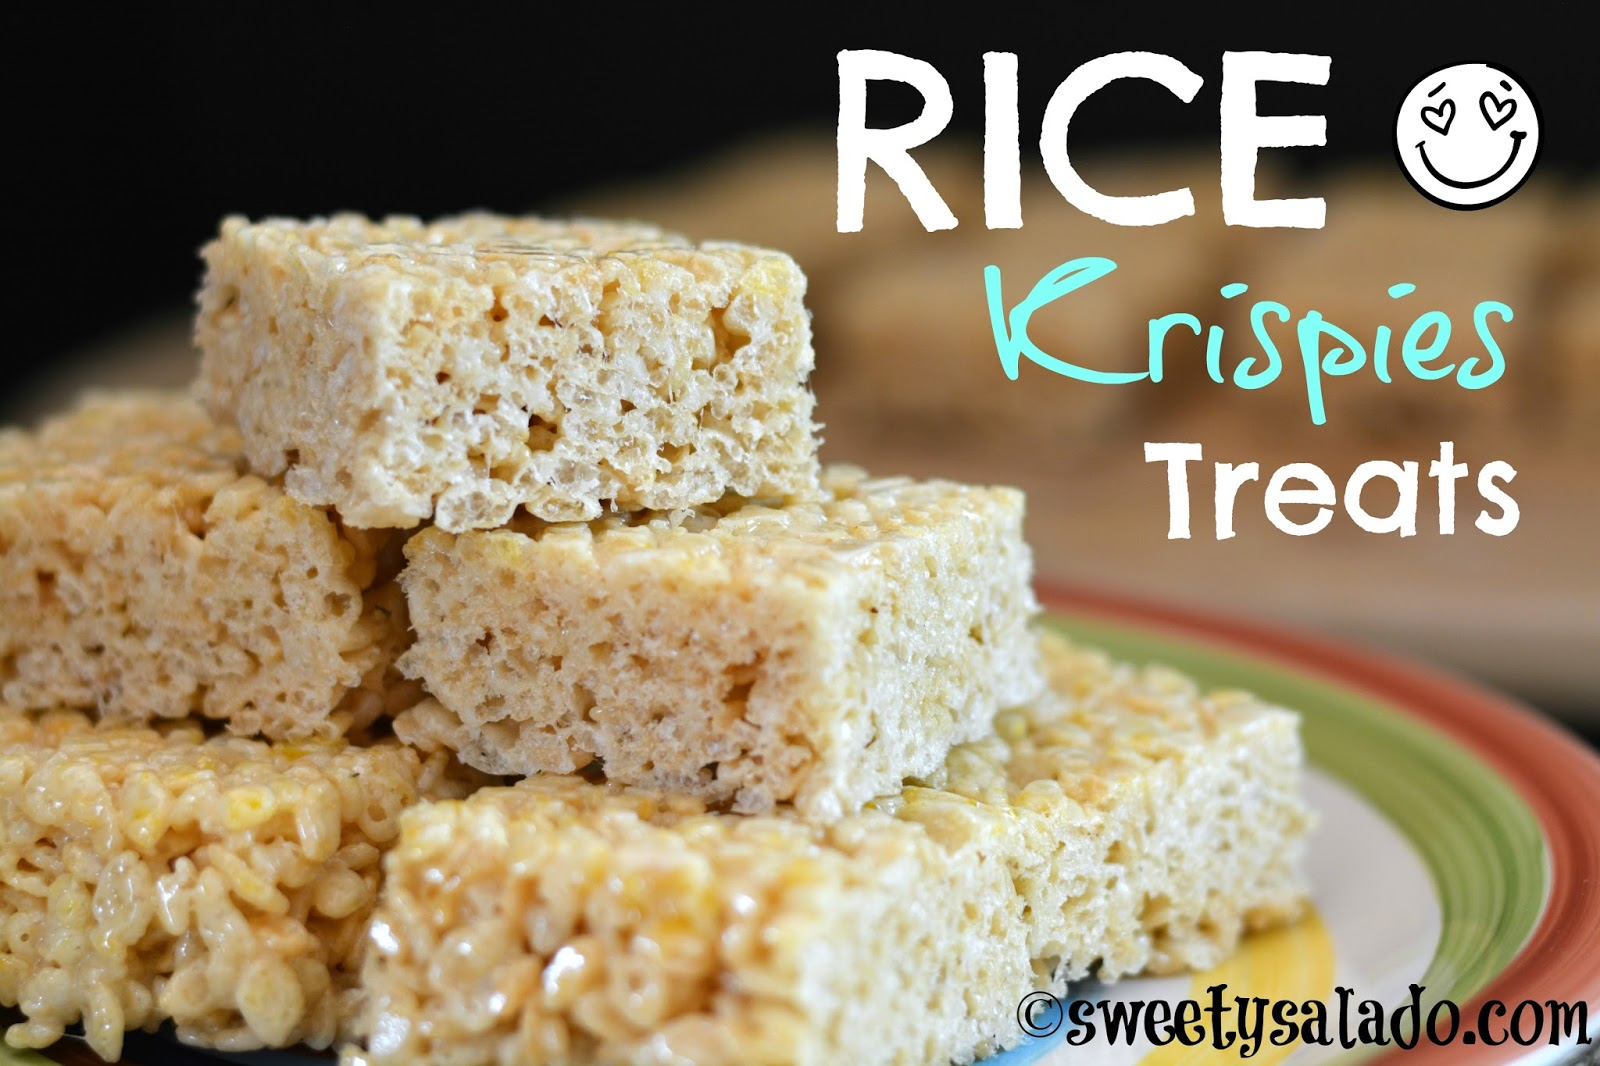 Sweet y salado rice krispies treats i like making this recipe in the fall because for some reason its when my craving for something sweet starts to kick in im not really a sweets kind of ccuart Image collections